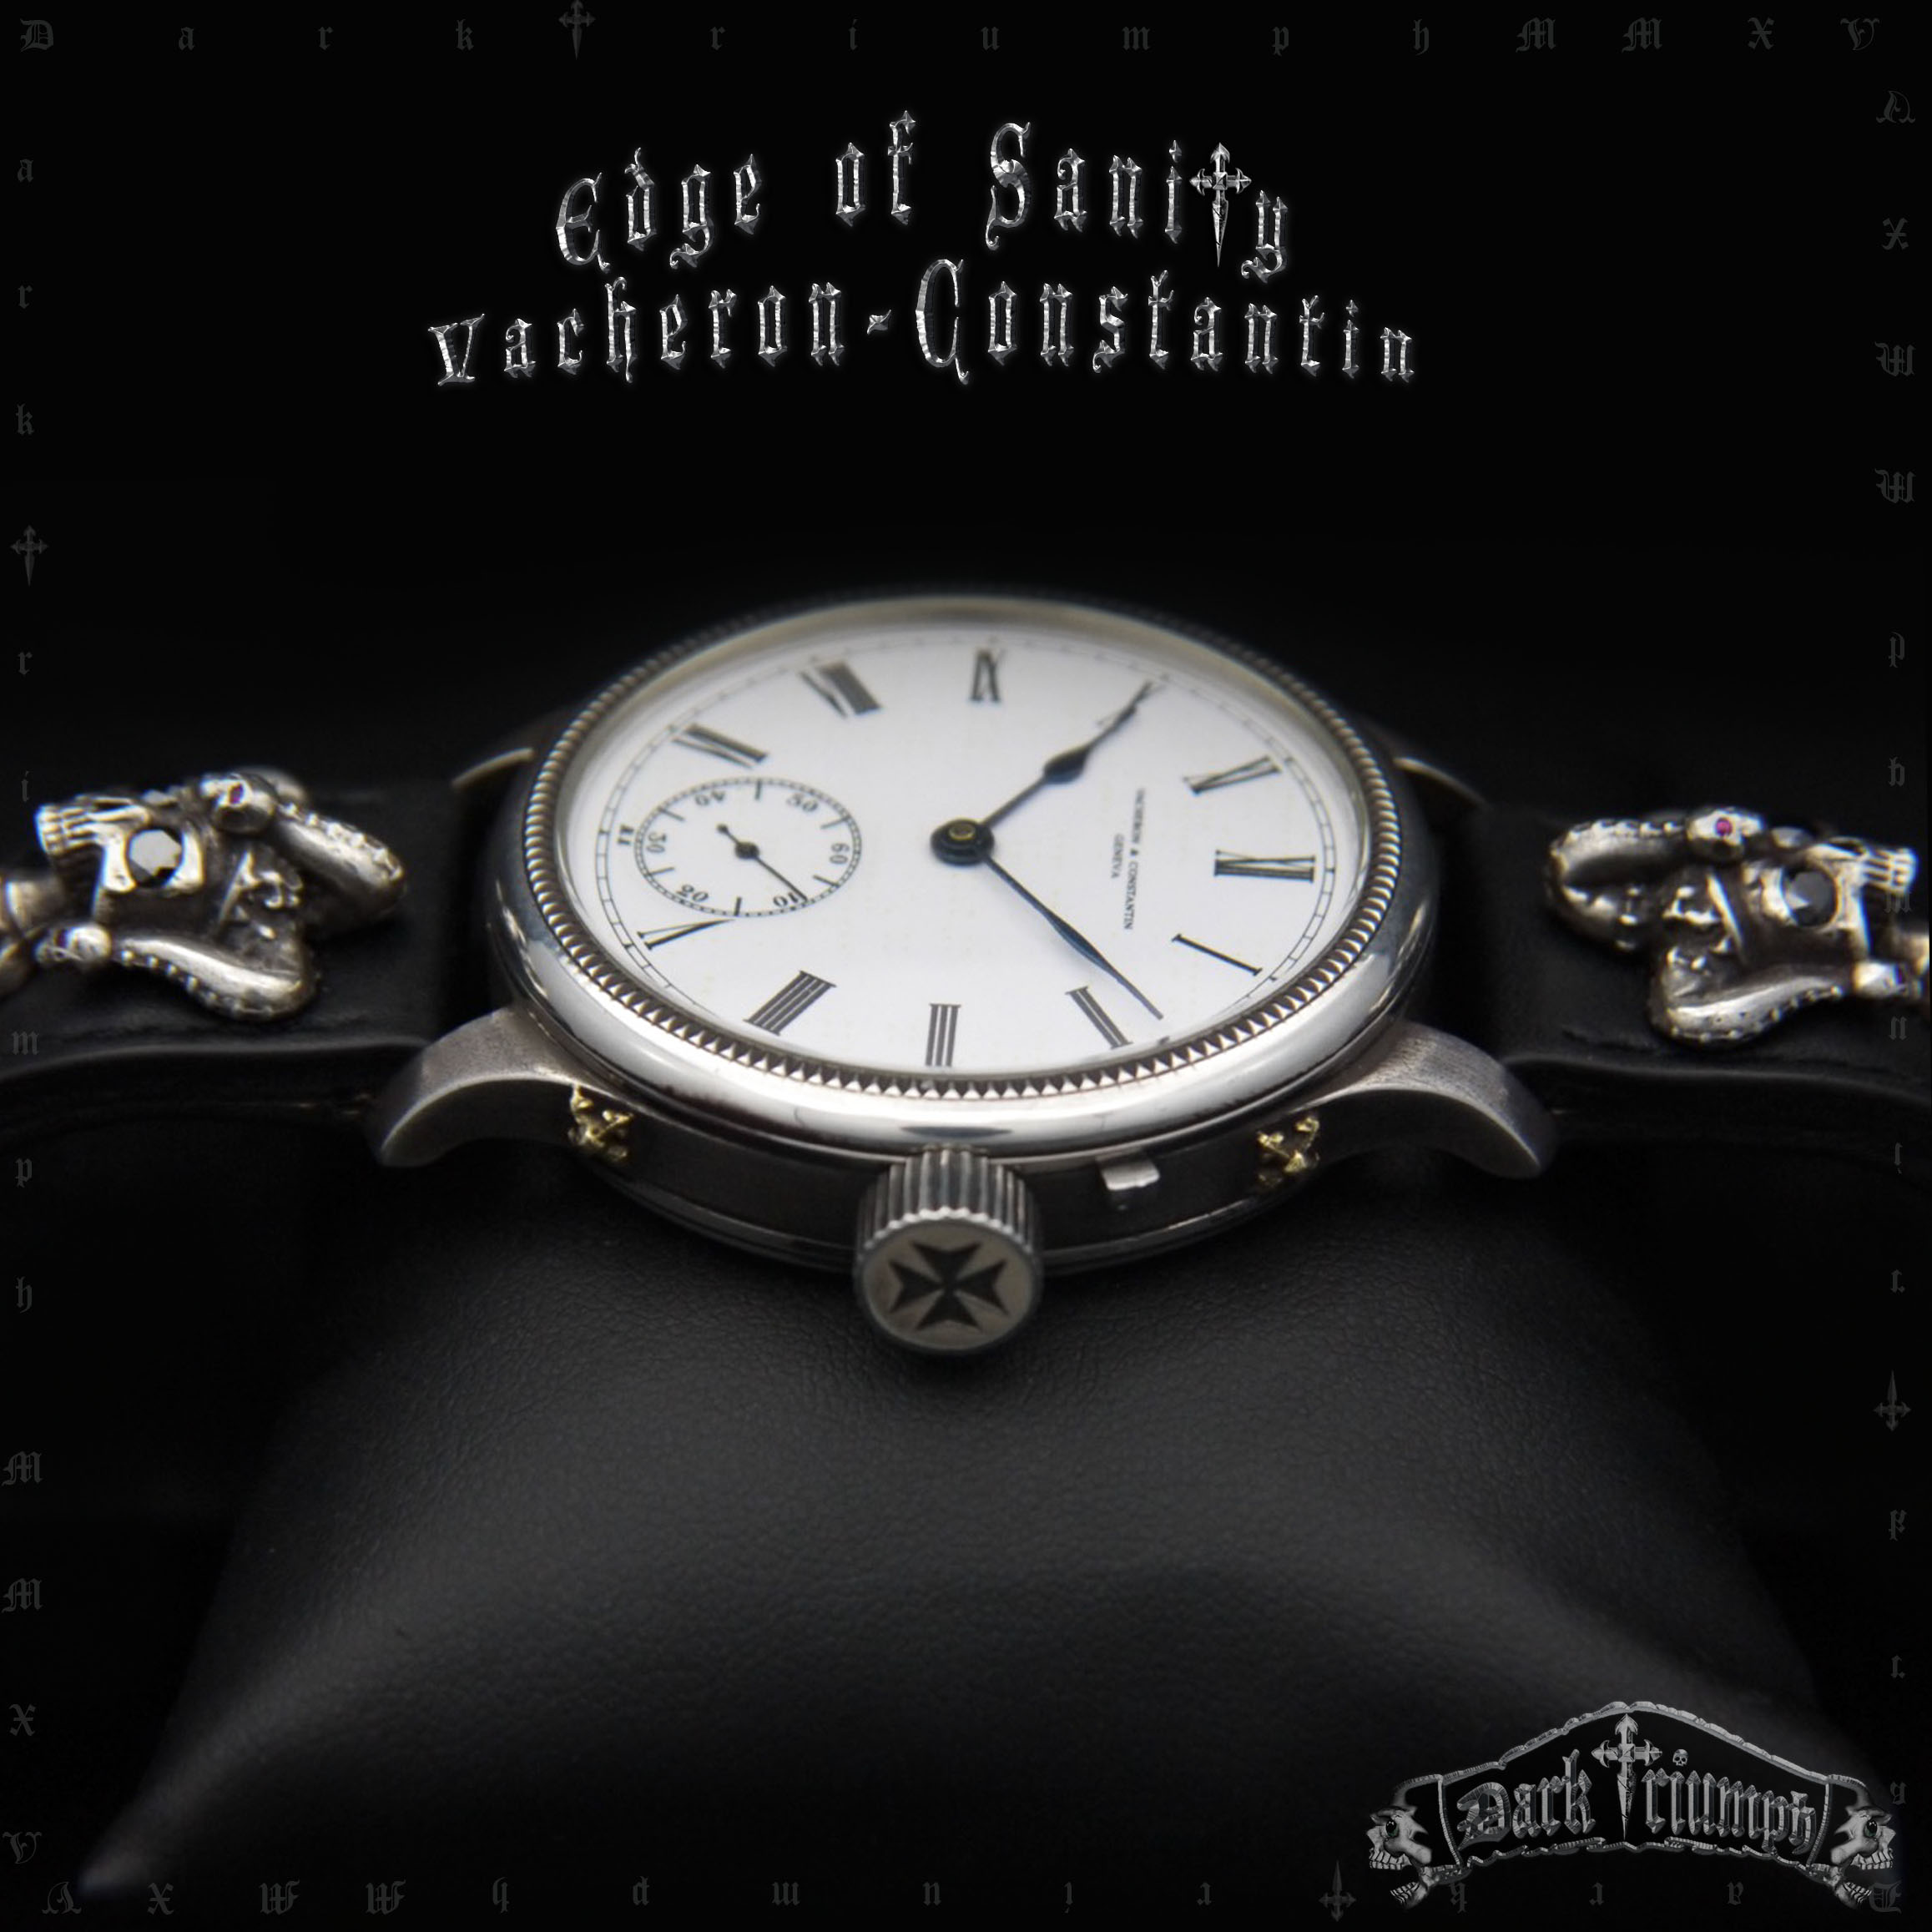 edge-of-sanity-vacheron-constantin-titled-side